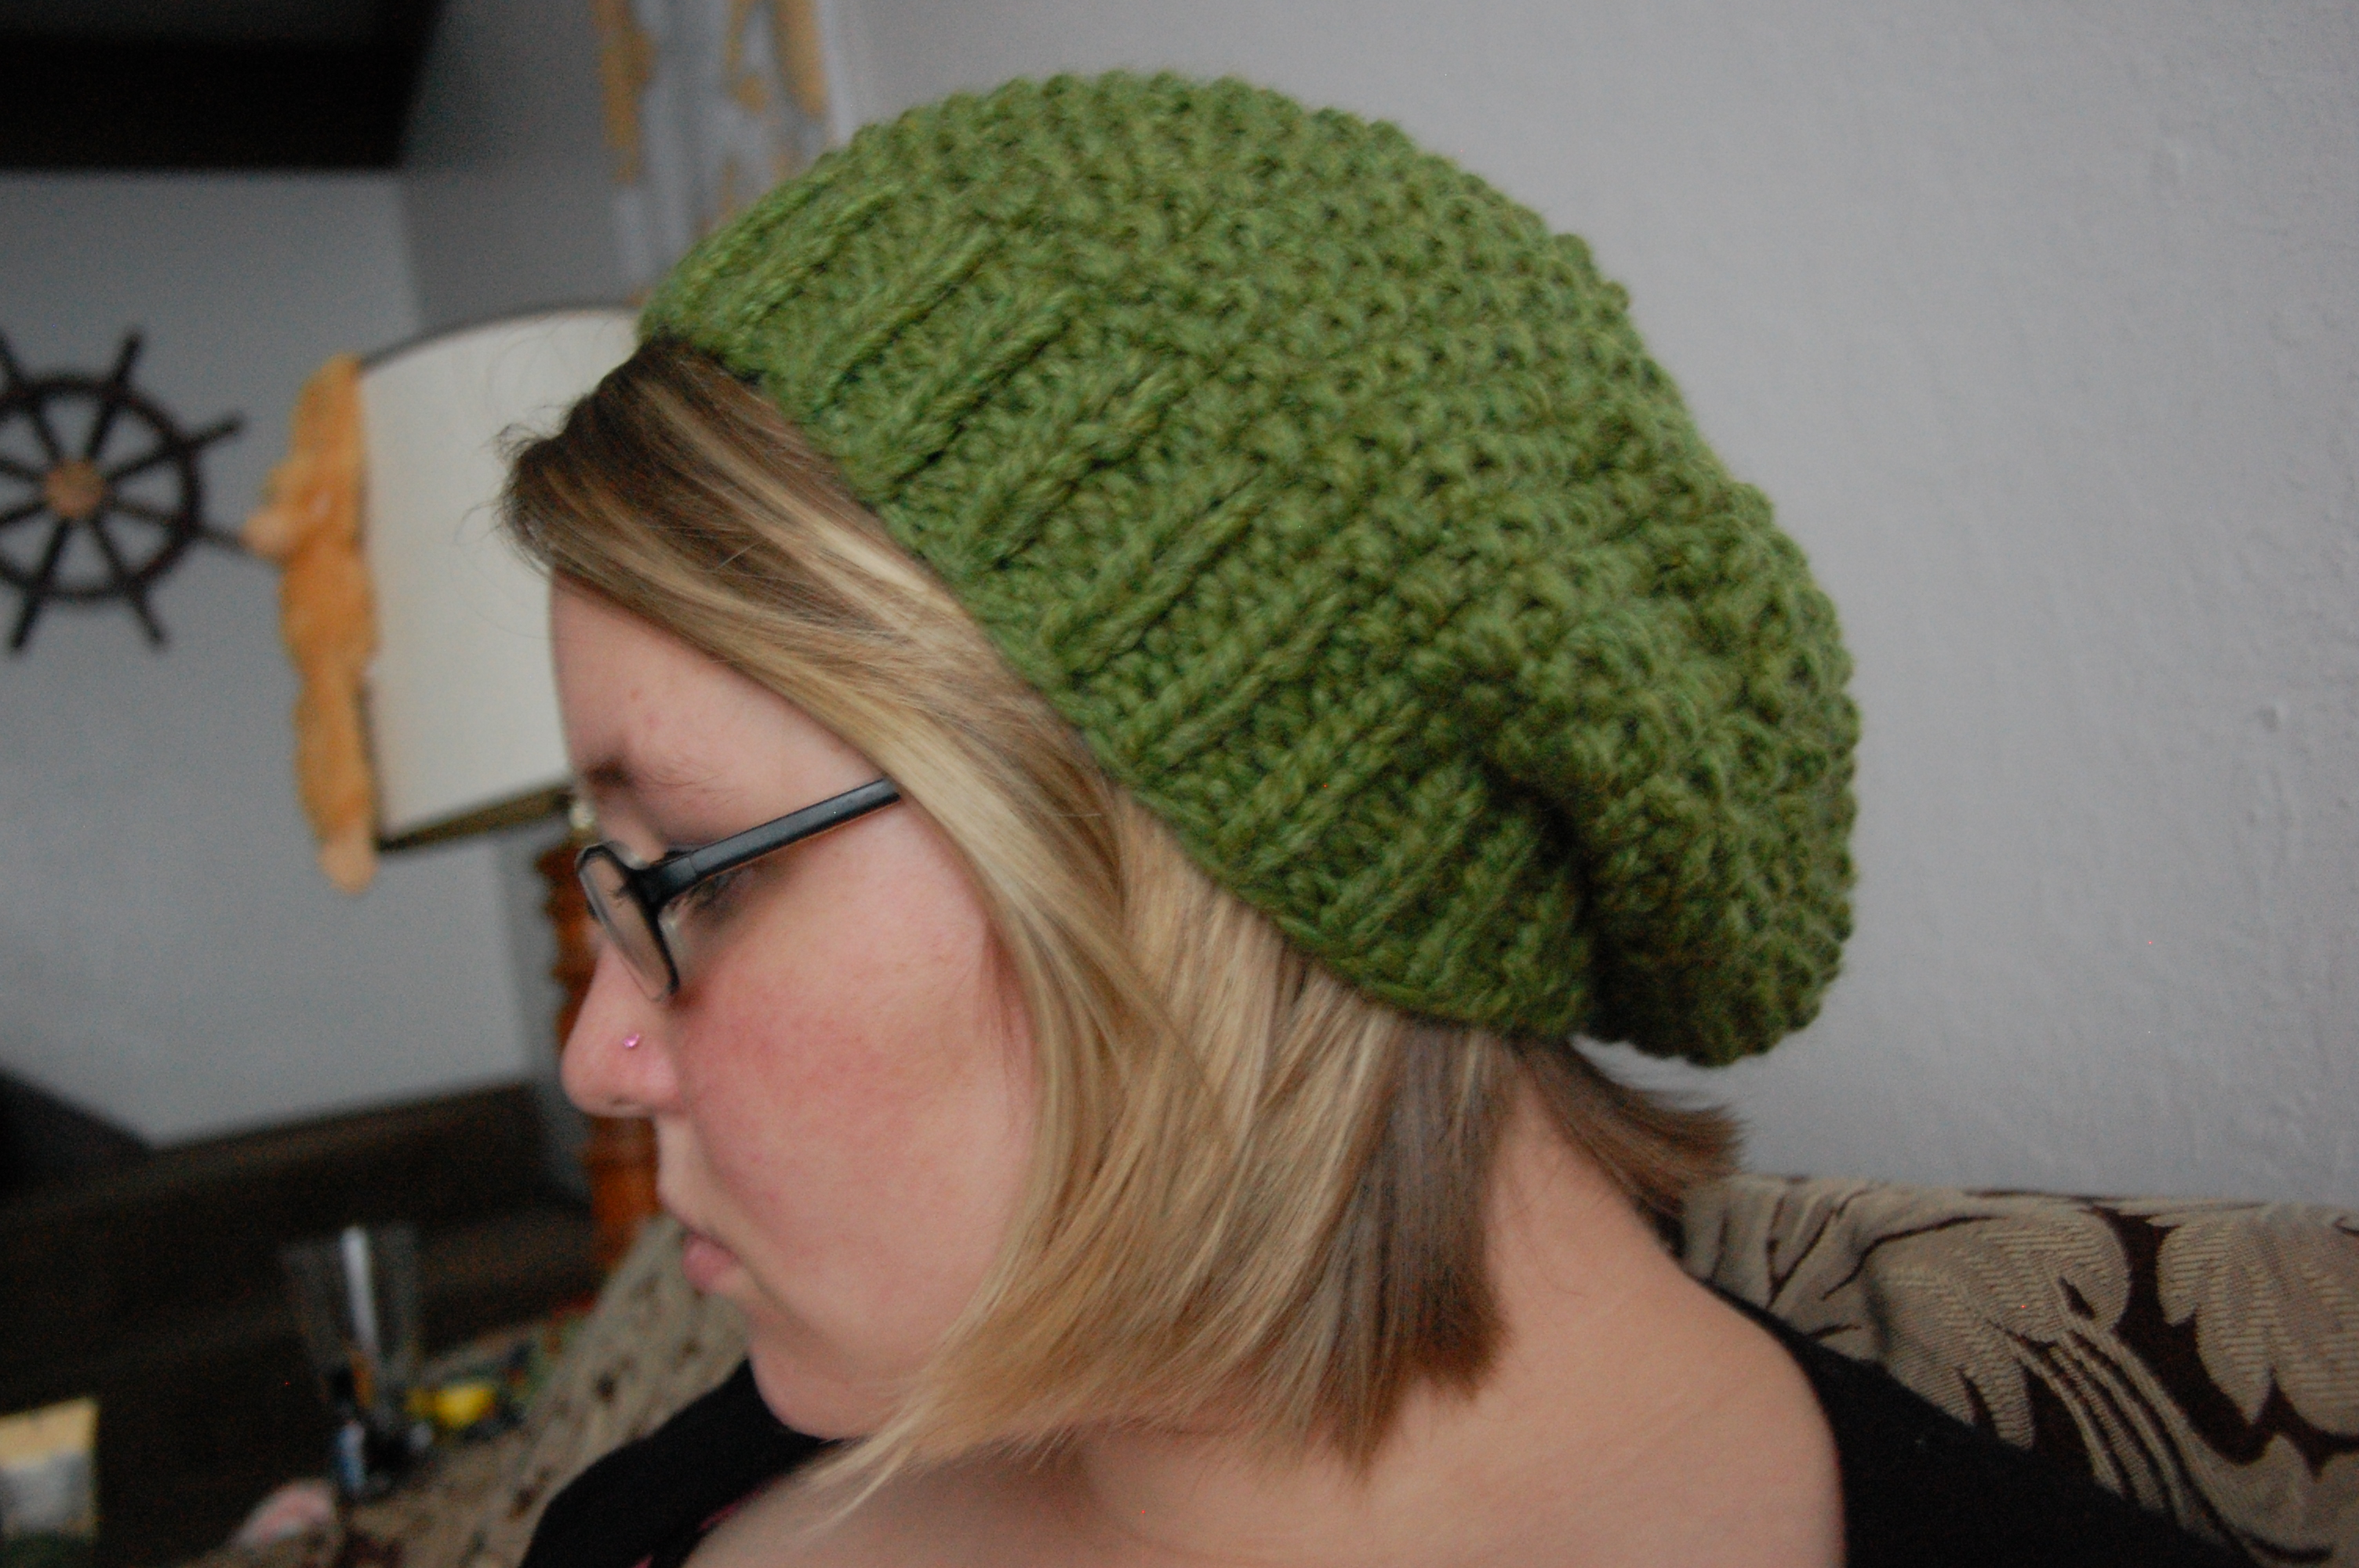 Lemon grass hat knittybutton its a super basic pattern bankloansurffo Gallery